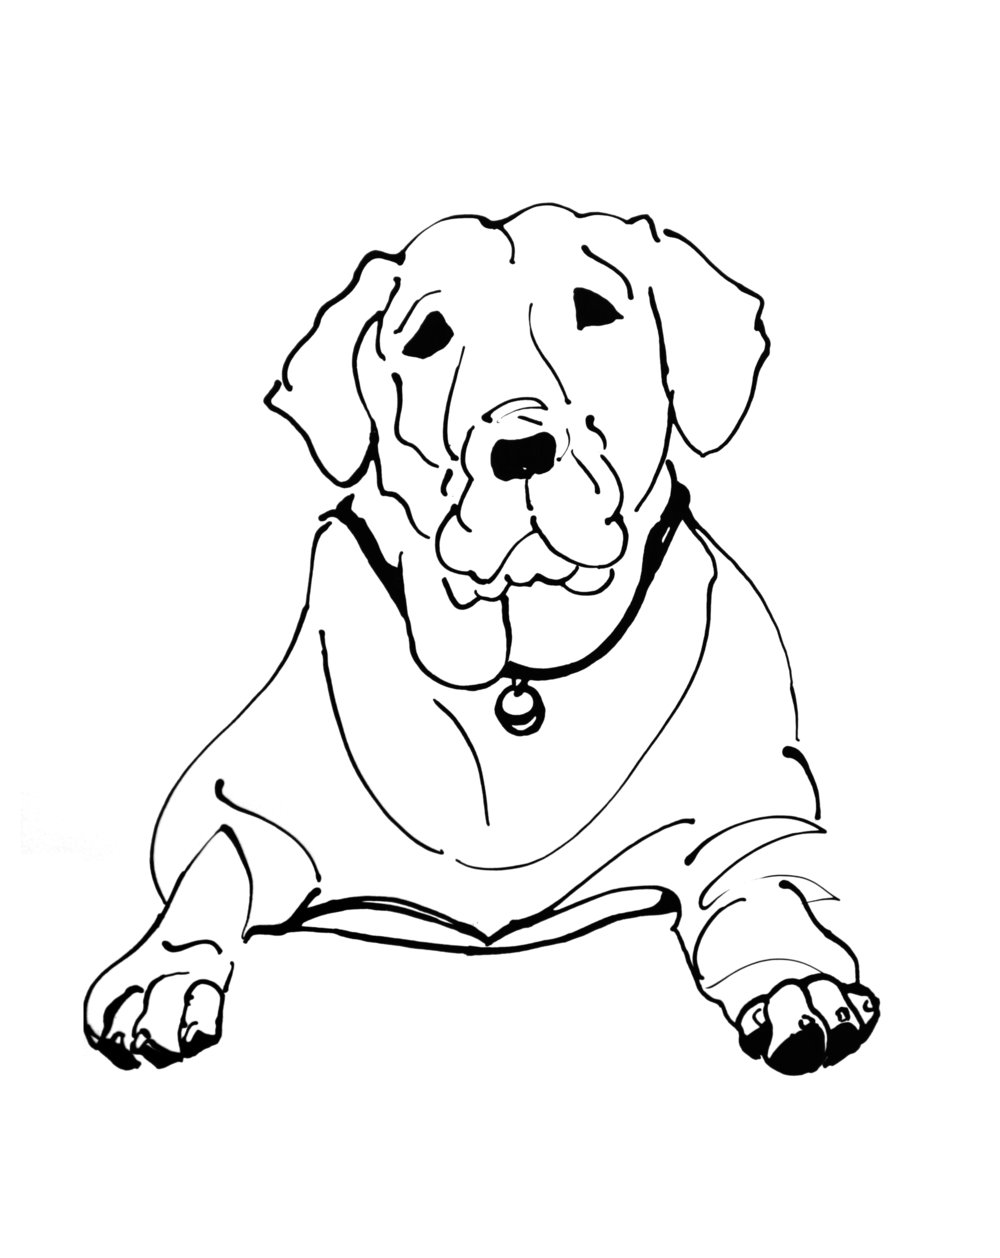 I'M READY WHEN YOU ARE. JACKSON,104 LB. YELLOW LAB.INK_.JPG